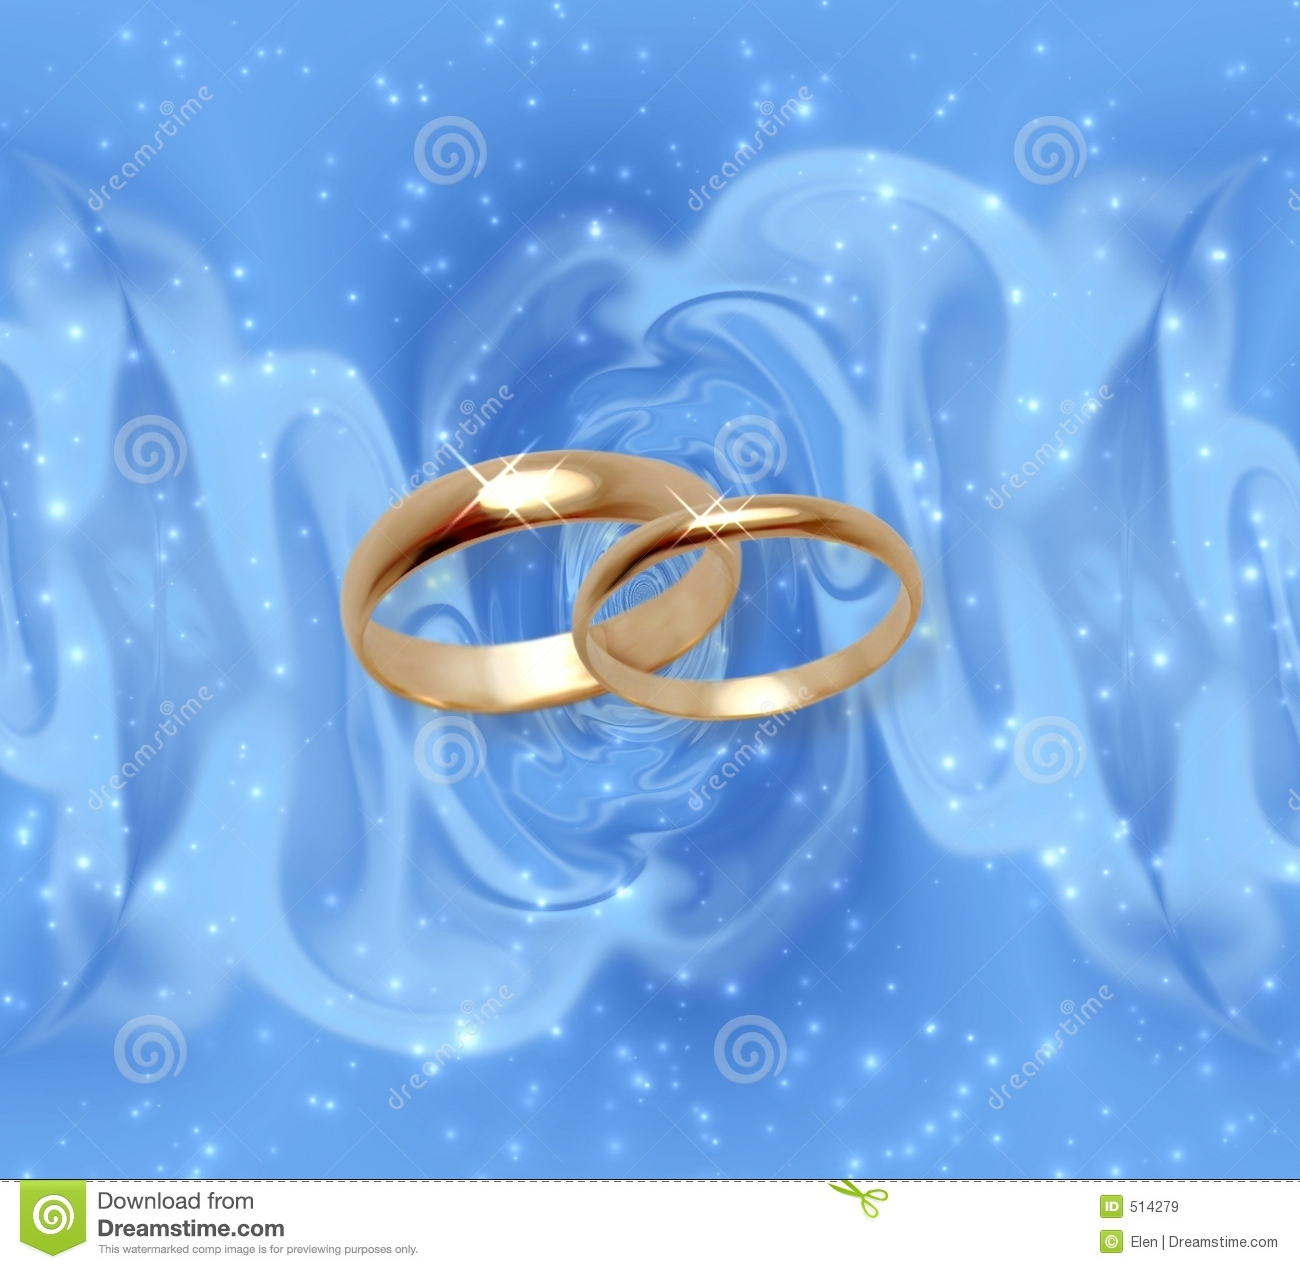 royalty free stock image wedding rings blue drapery image blue wedding rings Abstract snow background with wedding rings Royalty Free Stock Images